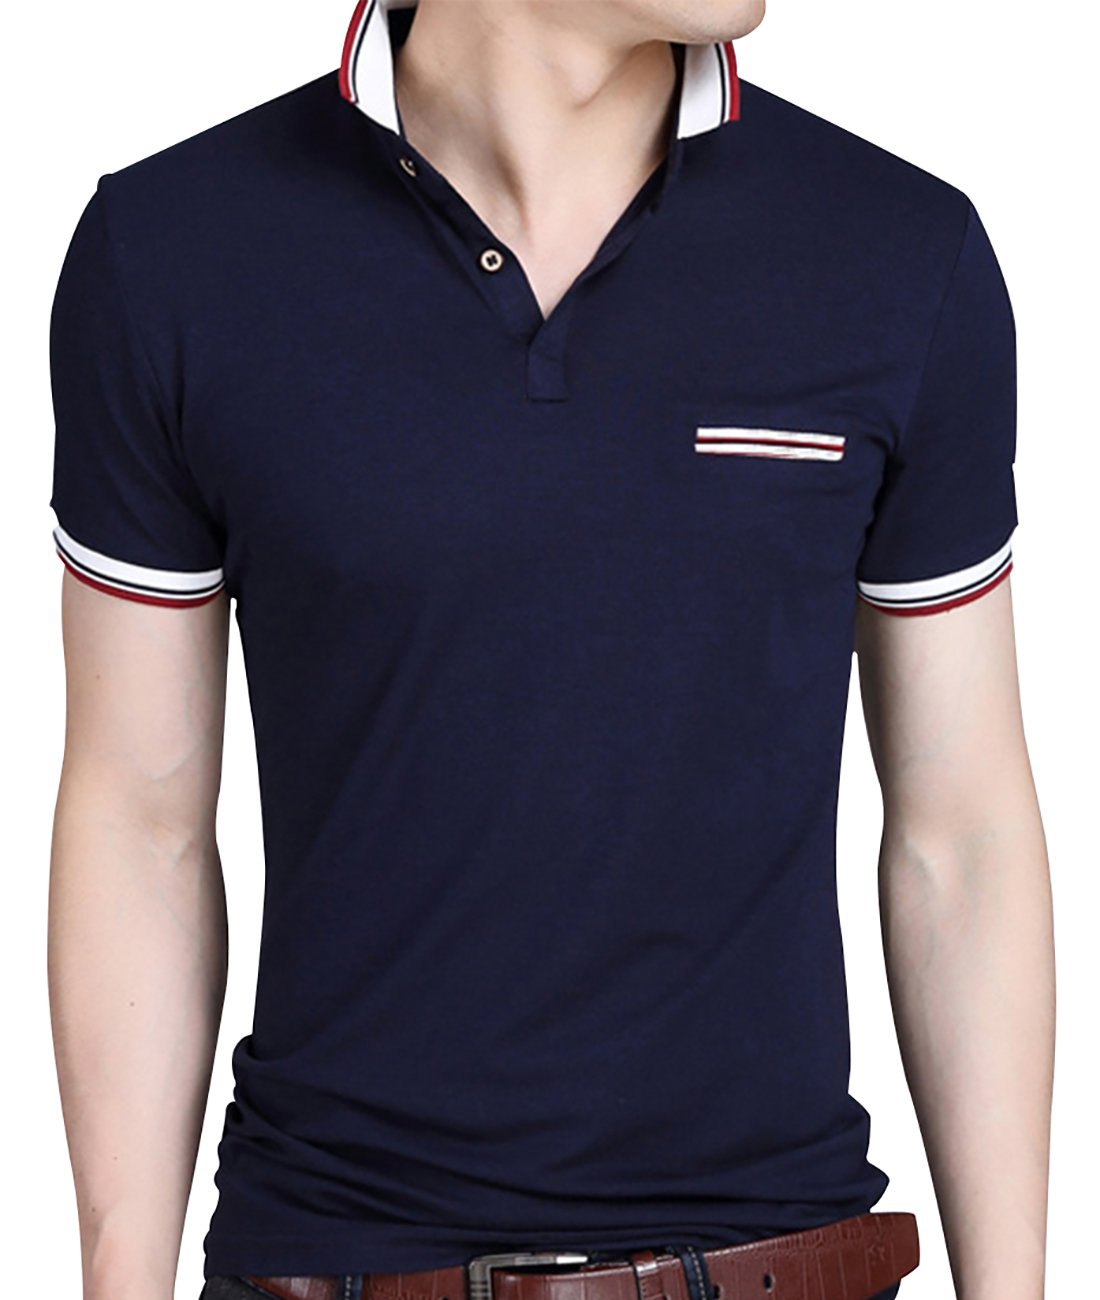 0e98c788ec6 Amazon.com  Sanifer Men s Collared Shirt Summer Casual Short Sleeve Slim  Fit Polo Shirts T Shirts (US XL Asia 4XL